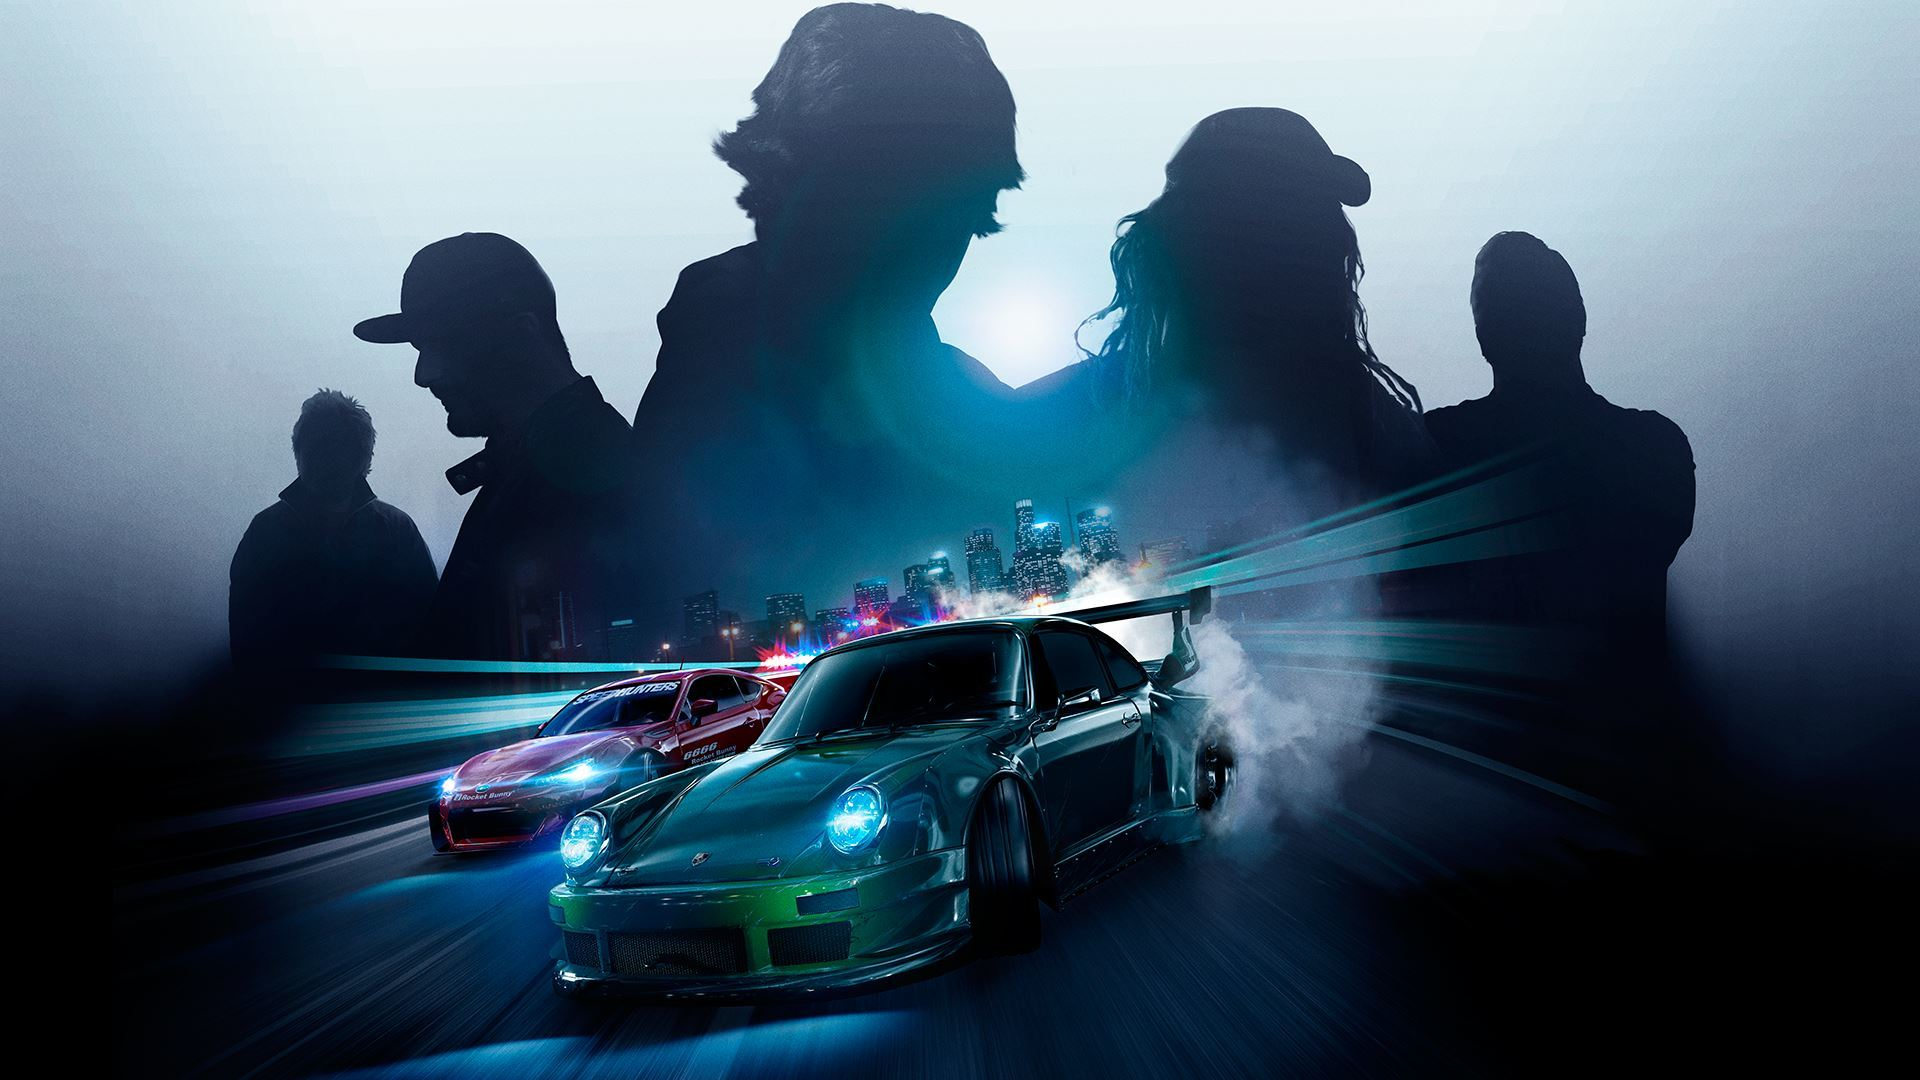 1680x1050 Need For Speed Porsche Art 1680x1050 Resolution Wallpaper Hd Games 4k Wallpapers Images Photos And Background